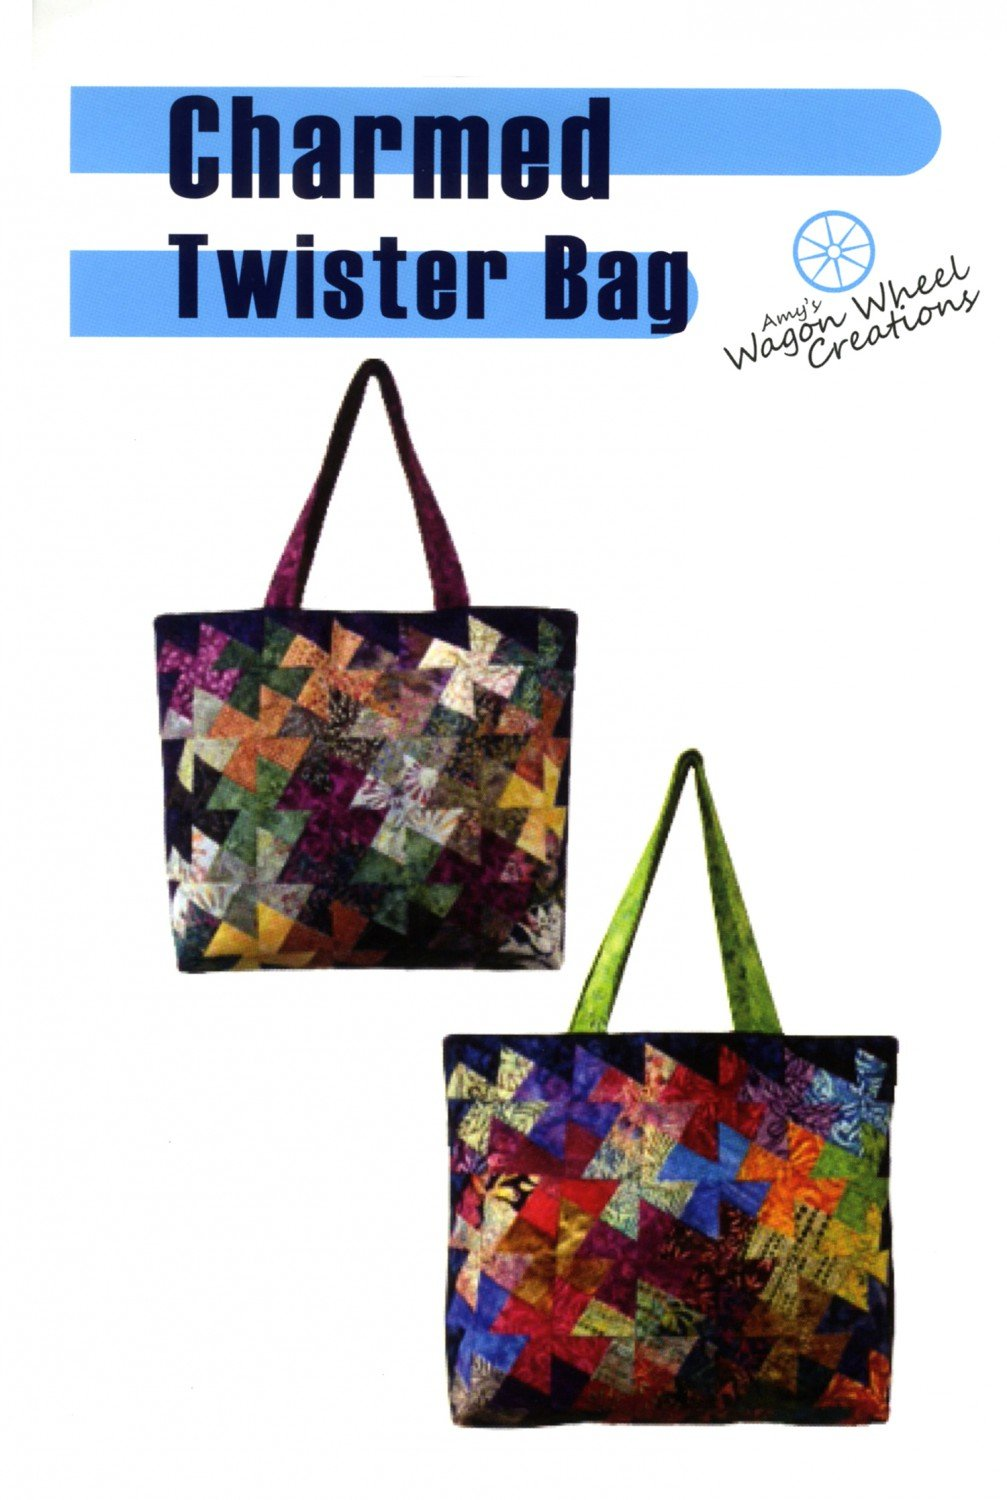 Charmed Twister Bag